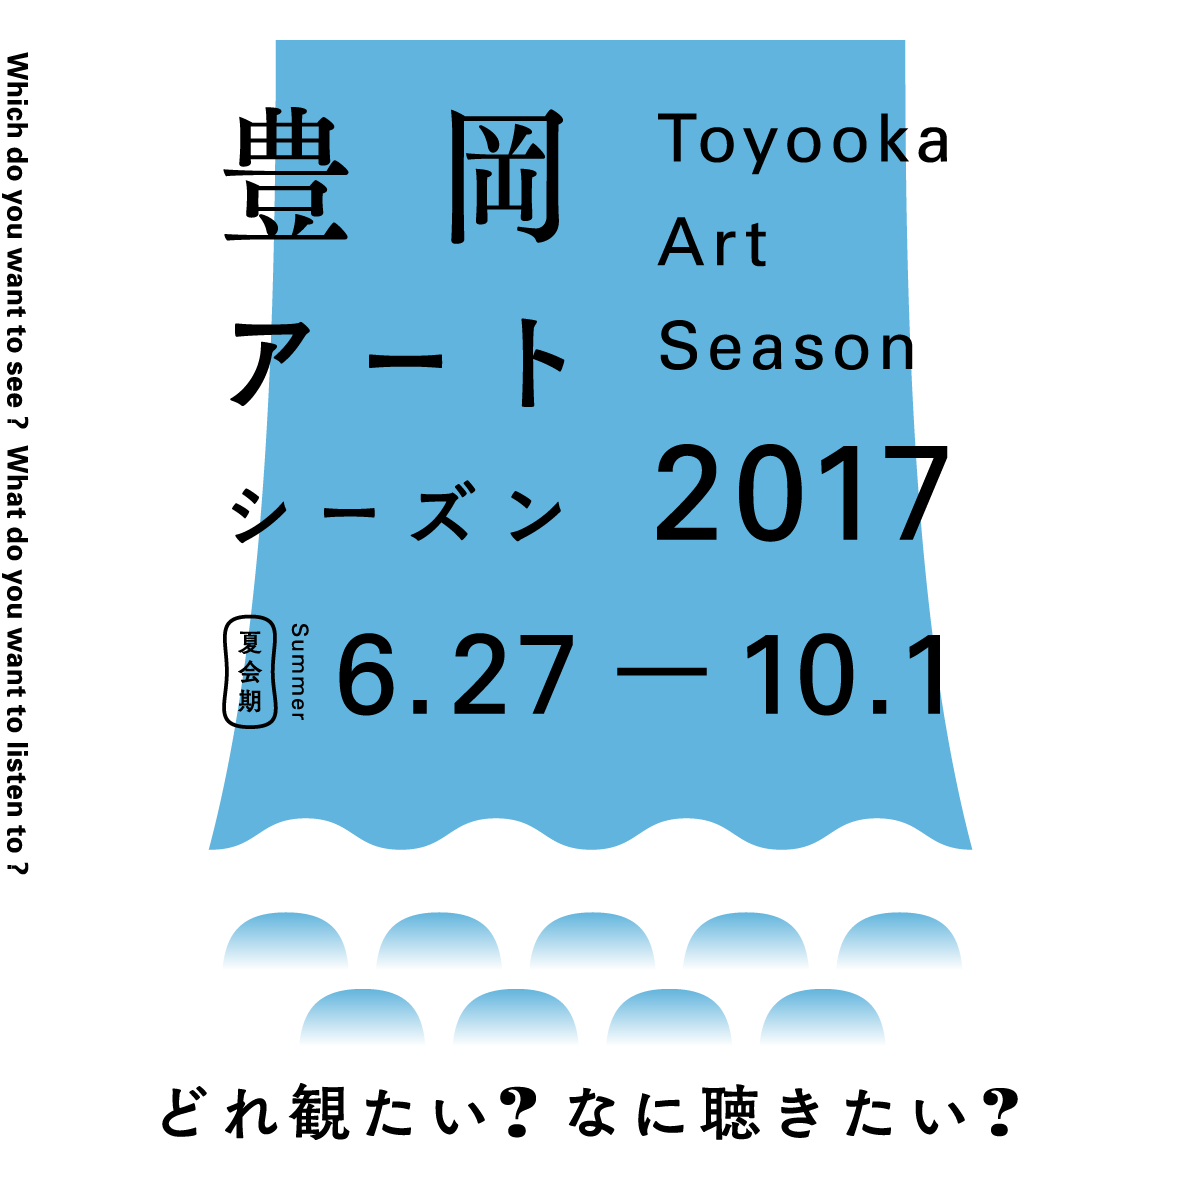 Toyooka Art Season 2017 SUMMER